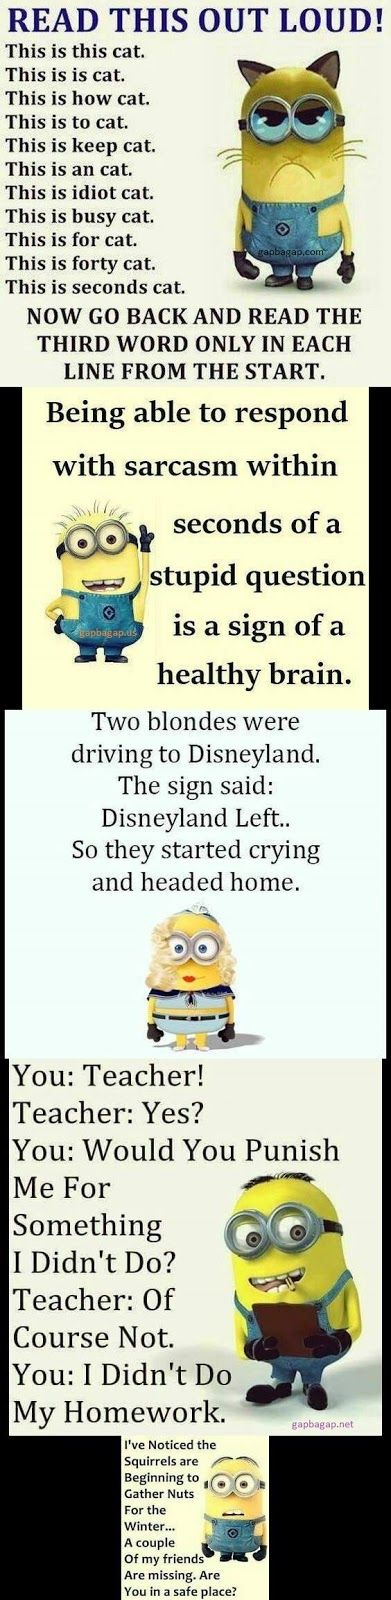 Pin by Kelly Mueller on Kelly's board Funny minion memes